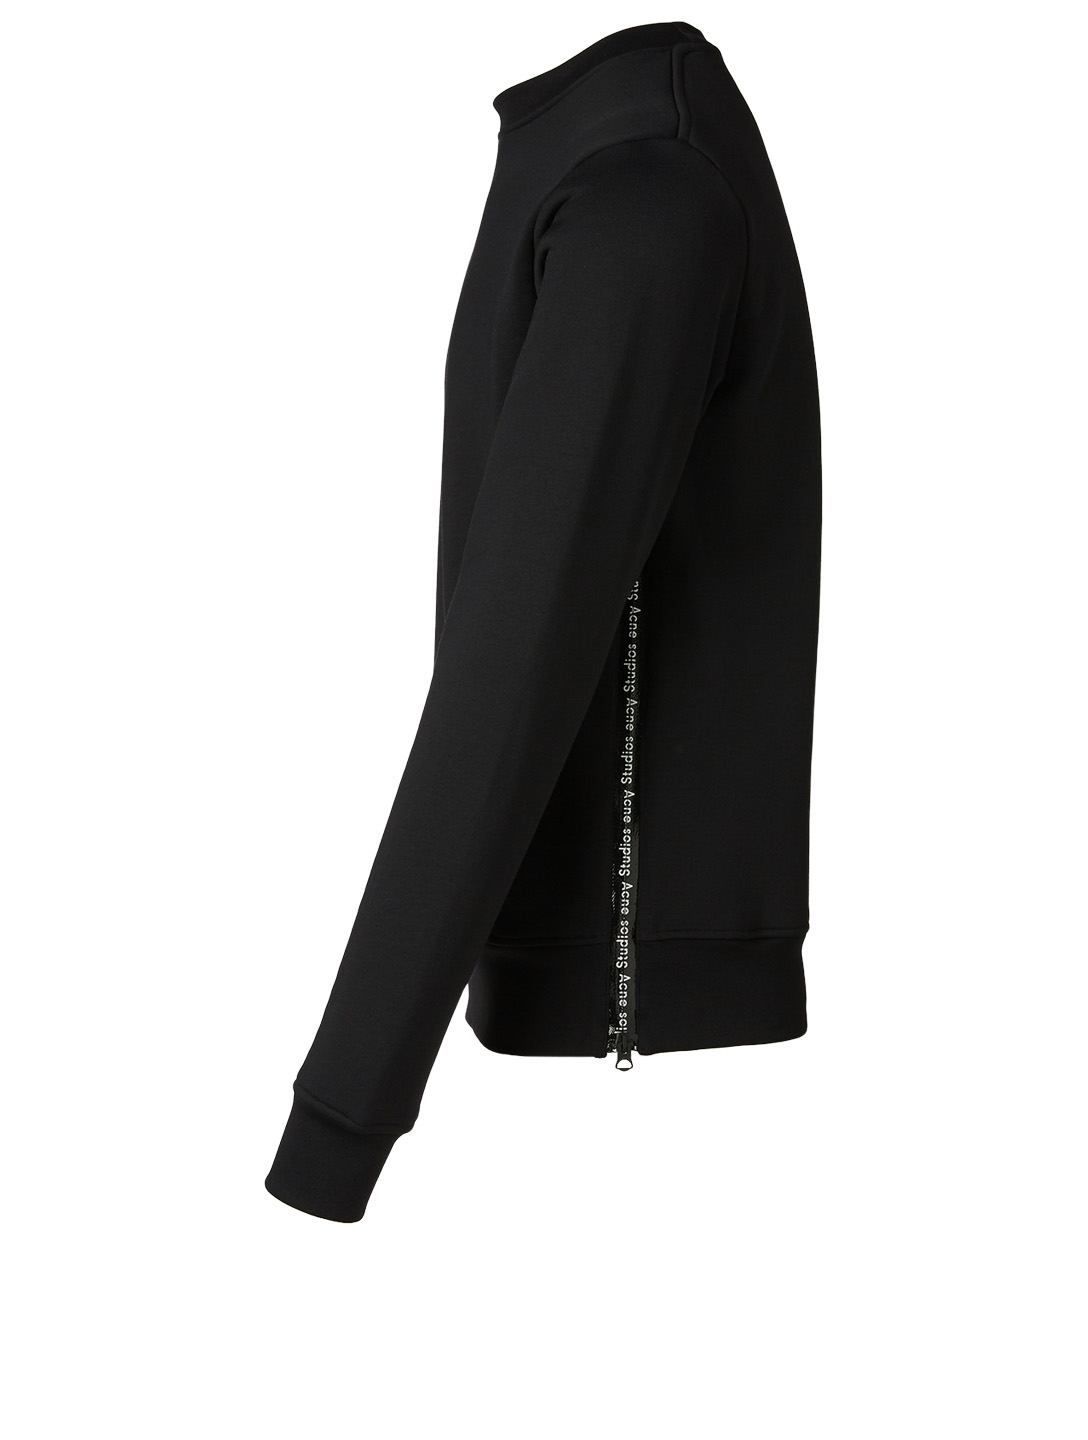 ACNE STUDIOS Cotton Sweatshirt With Side Zip Men's Black